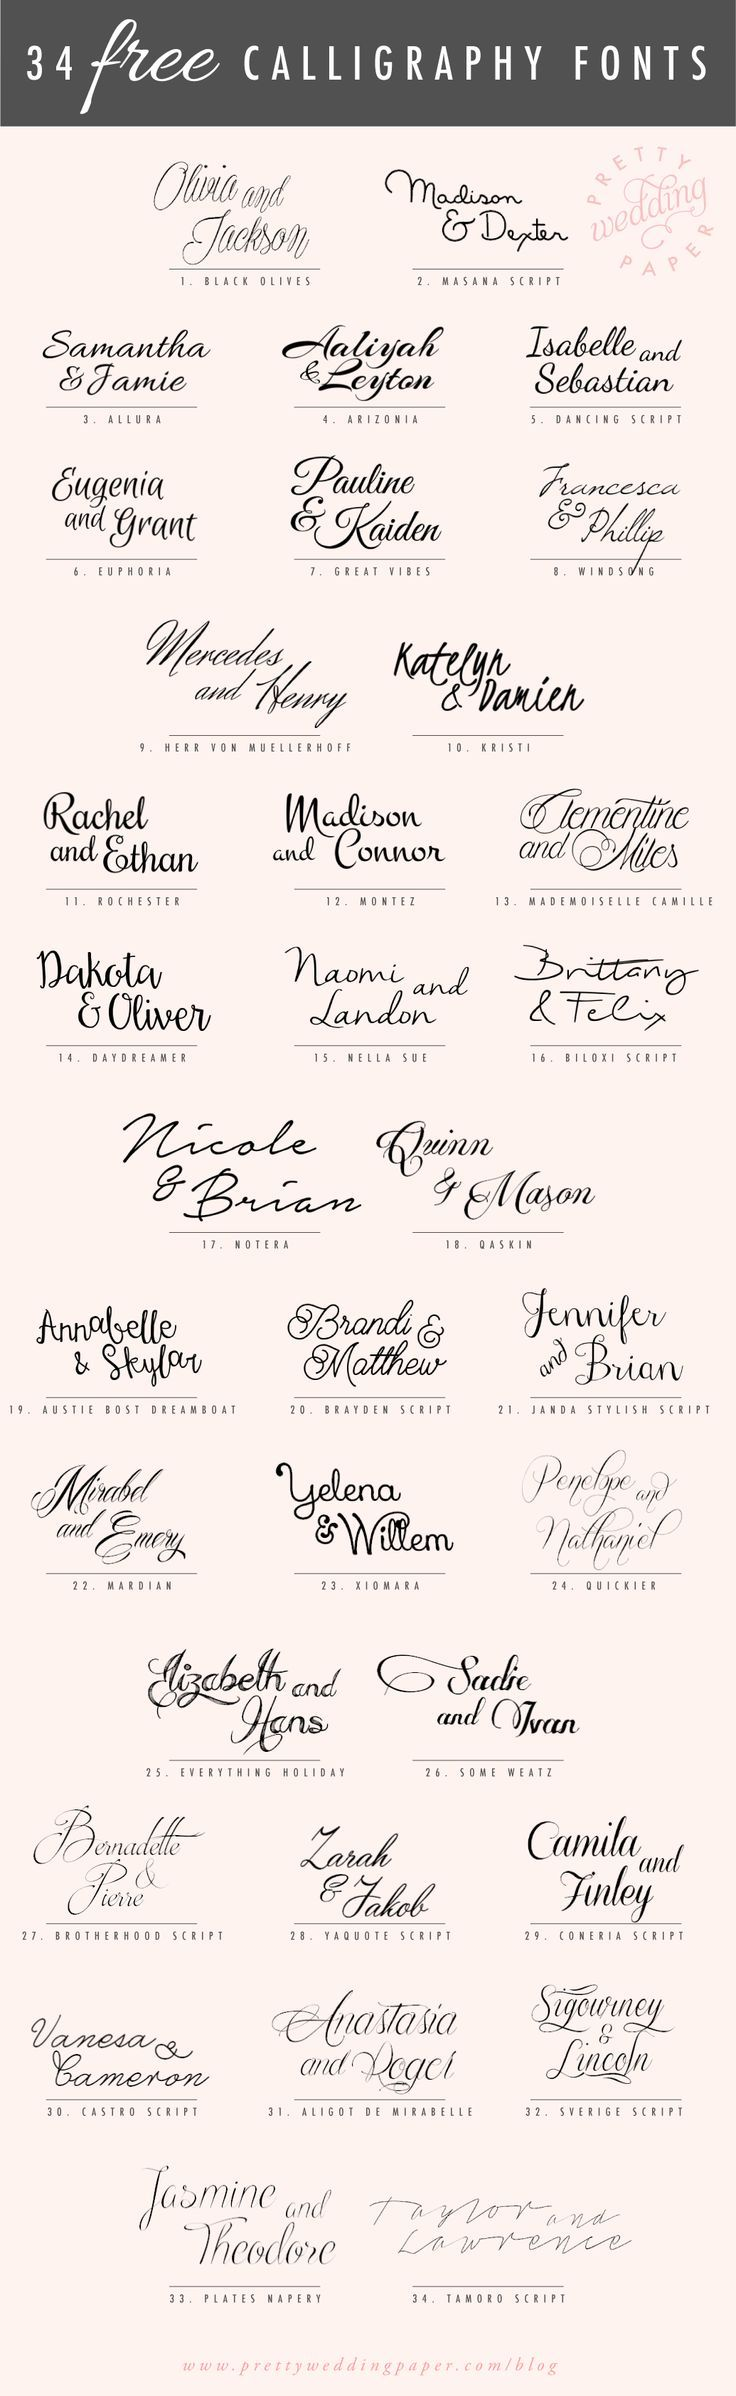 A follow-up to my post about amazing modern calligraphy fonts: here are 34 FREE calligraphic script fonts for hand-lettered, flowing wedding stationery! All the fonts listed below are absolutely free for personal use (some are free for commercial use, too – check the license!) which means you can use any and all of these to ……